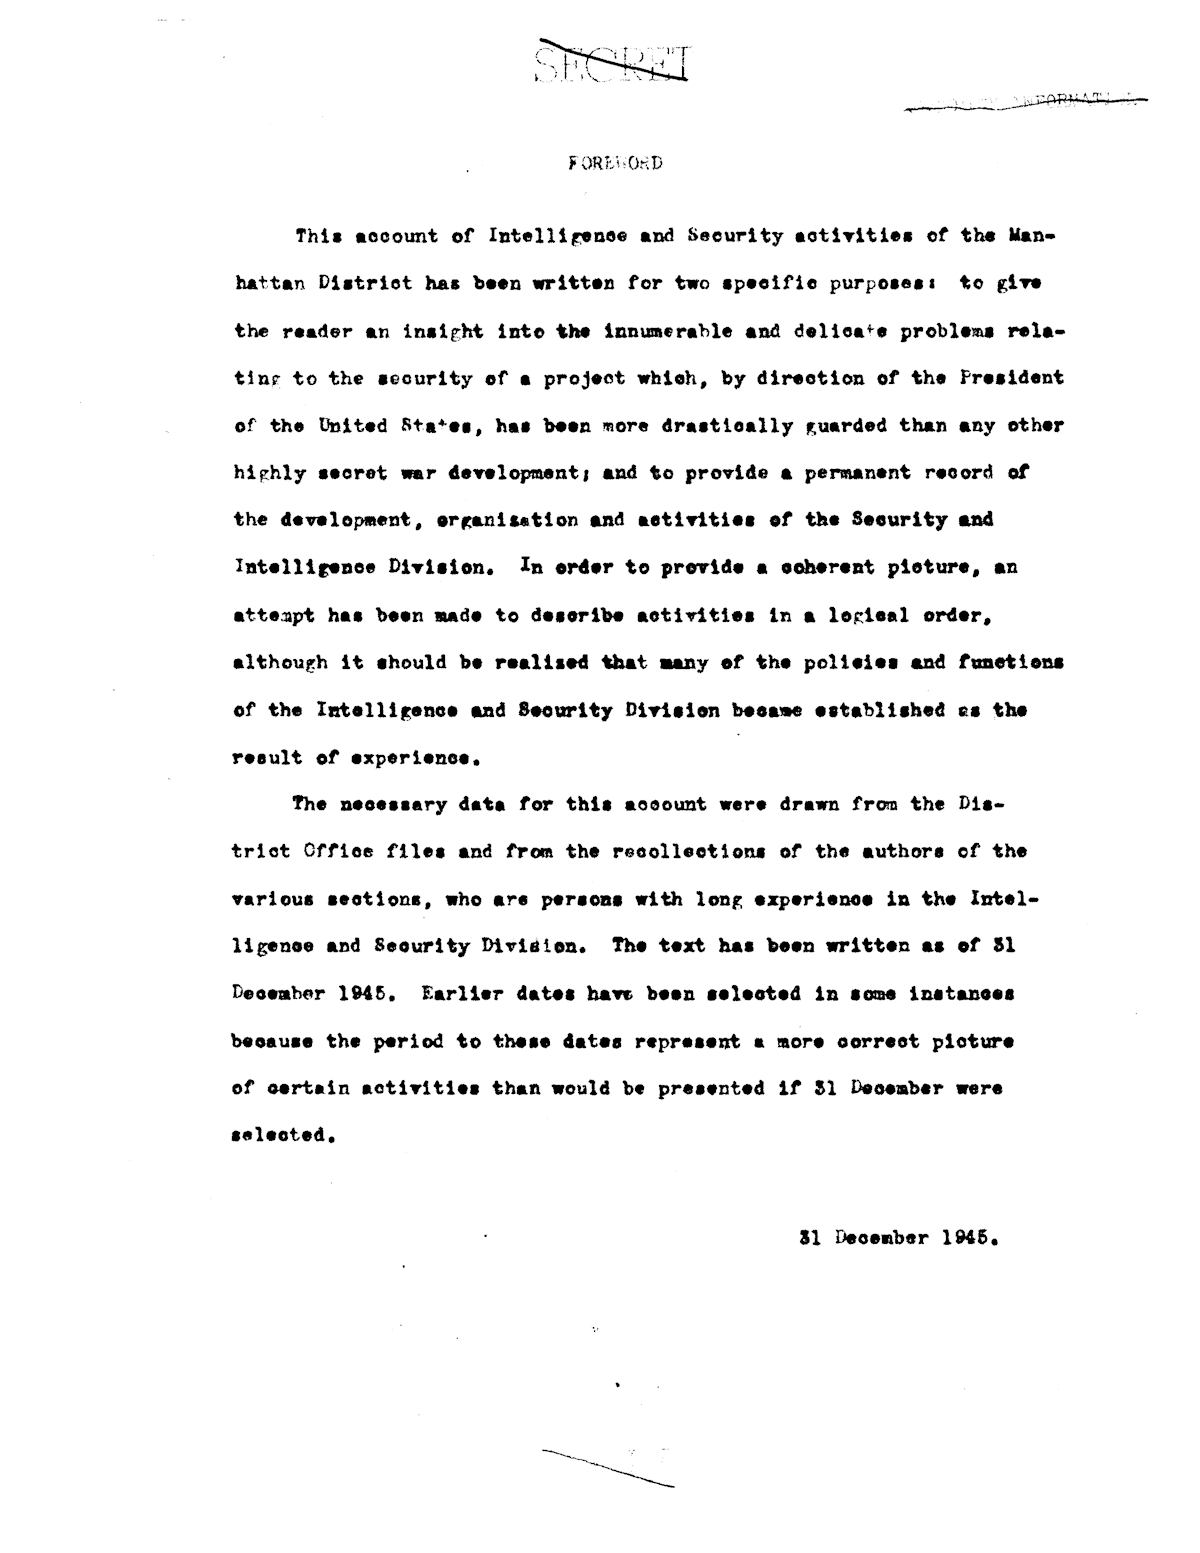 """after the fact the decision to drop the bomb 1 james west davidson and mark hamilton lytle, """"the decision to drop the bomb"""" ch 12 from james west davison and mark hamilton lytle, after the fact:."""